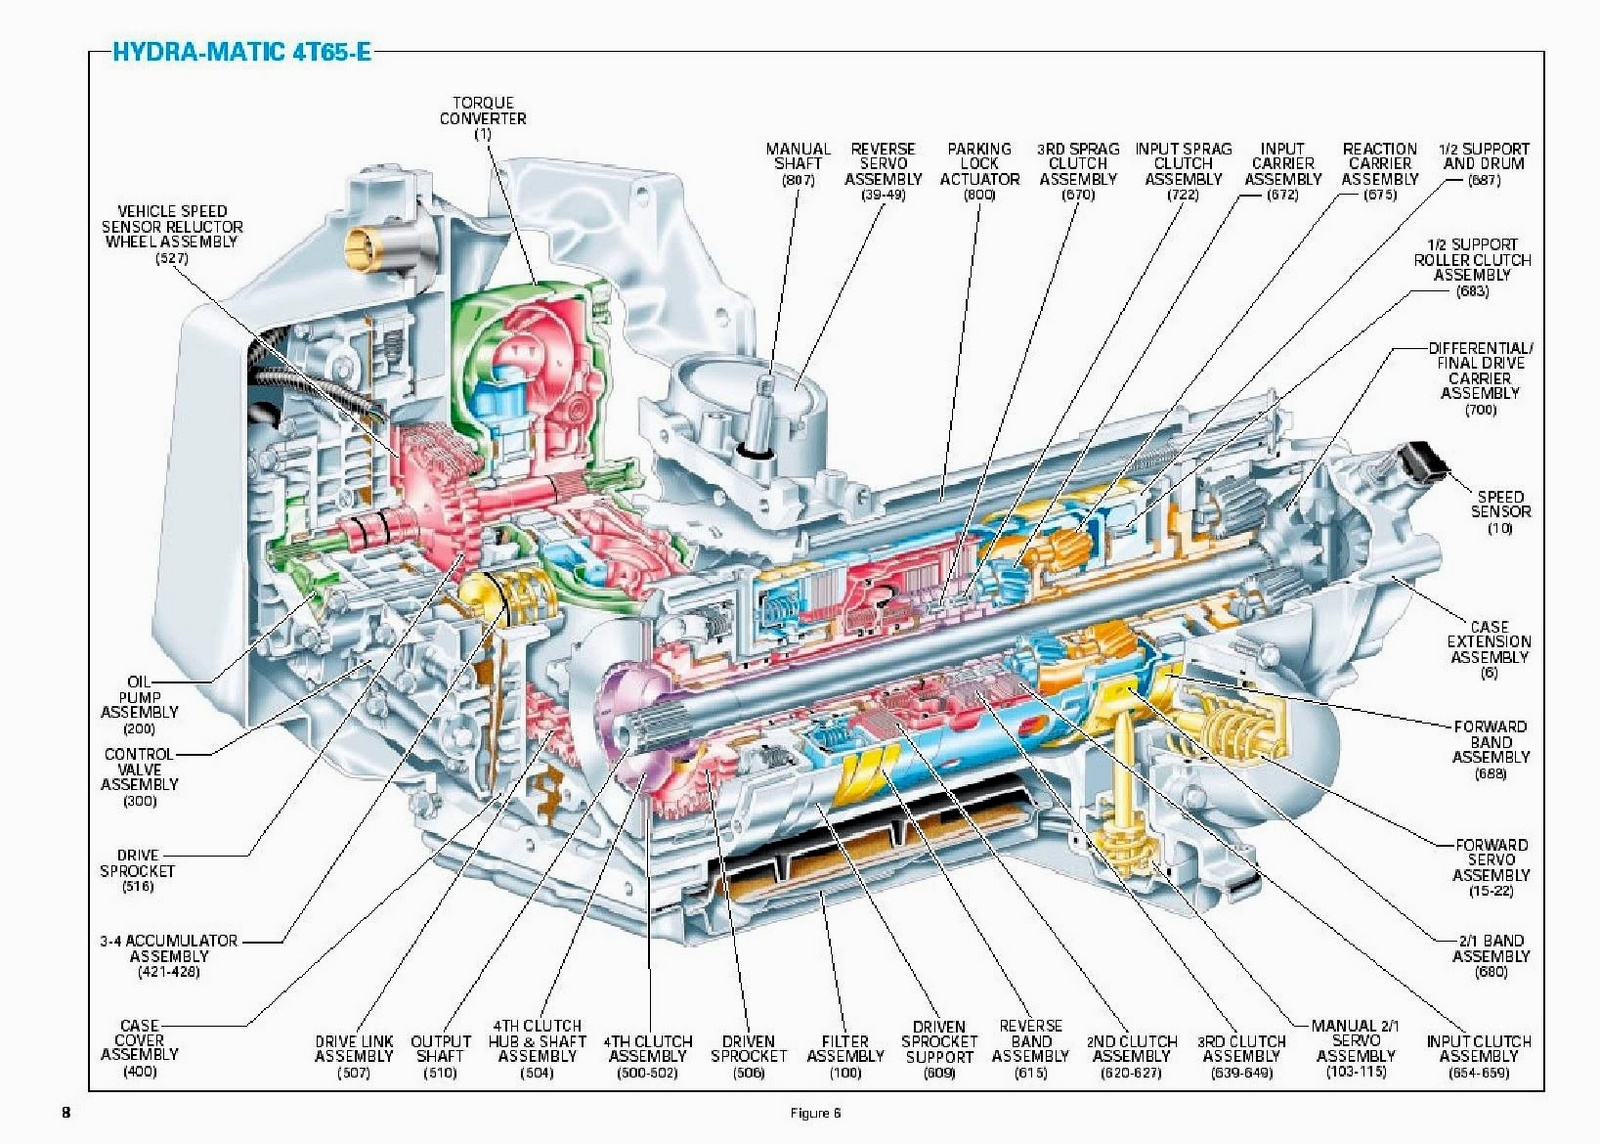 hight resolution of chevy impala exhaust system diagram on diagram of 2001 chevy impala2001 chevy impala exhaust system diagram